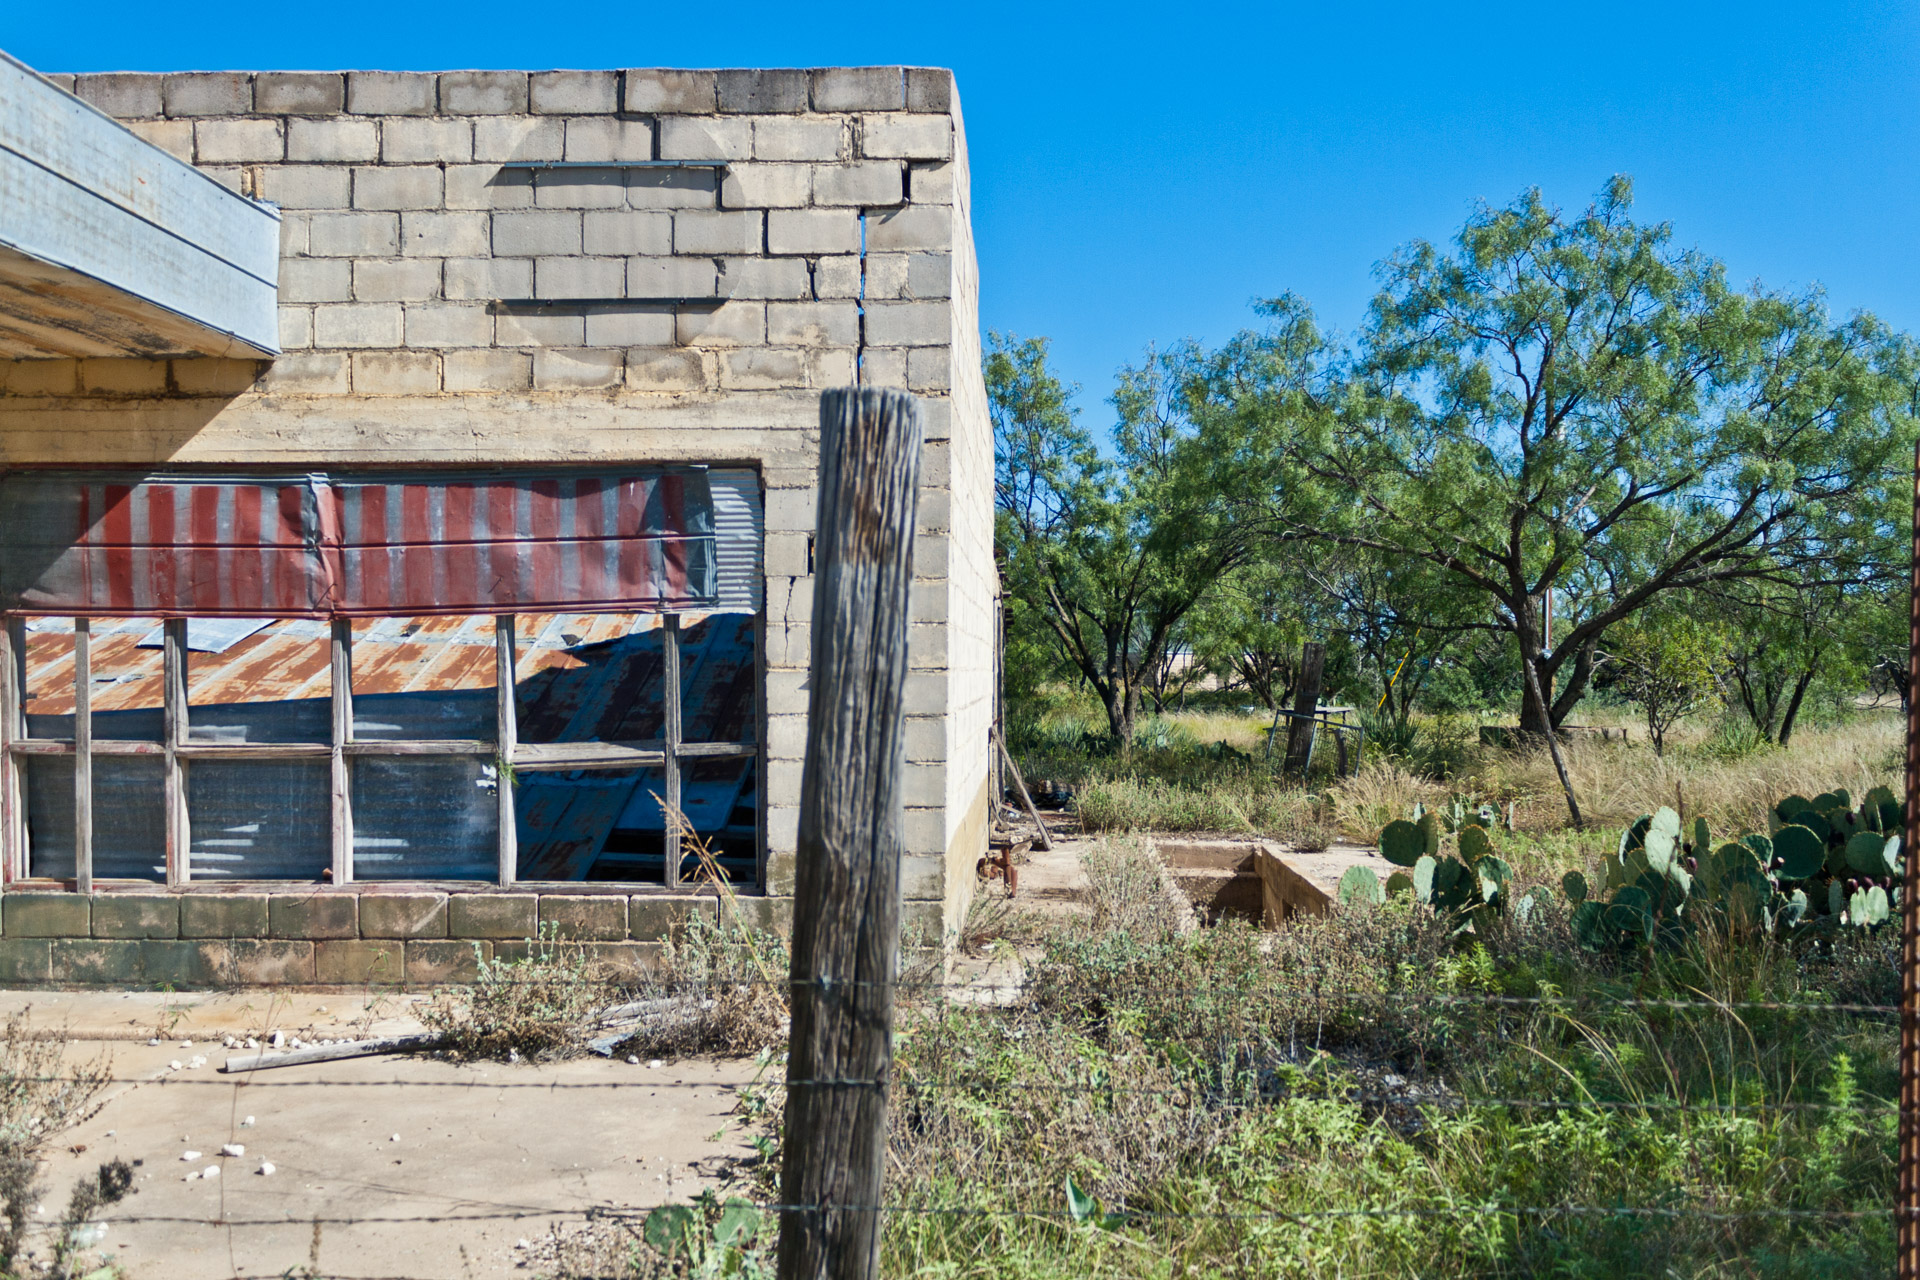 Talpa, Texas - The Falling Tin Store (cellar)